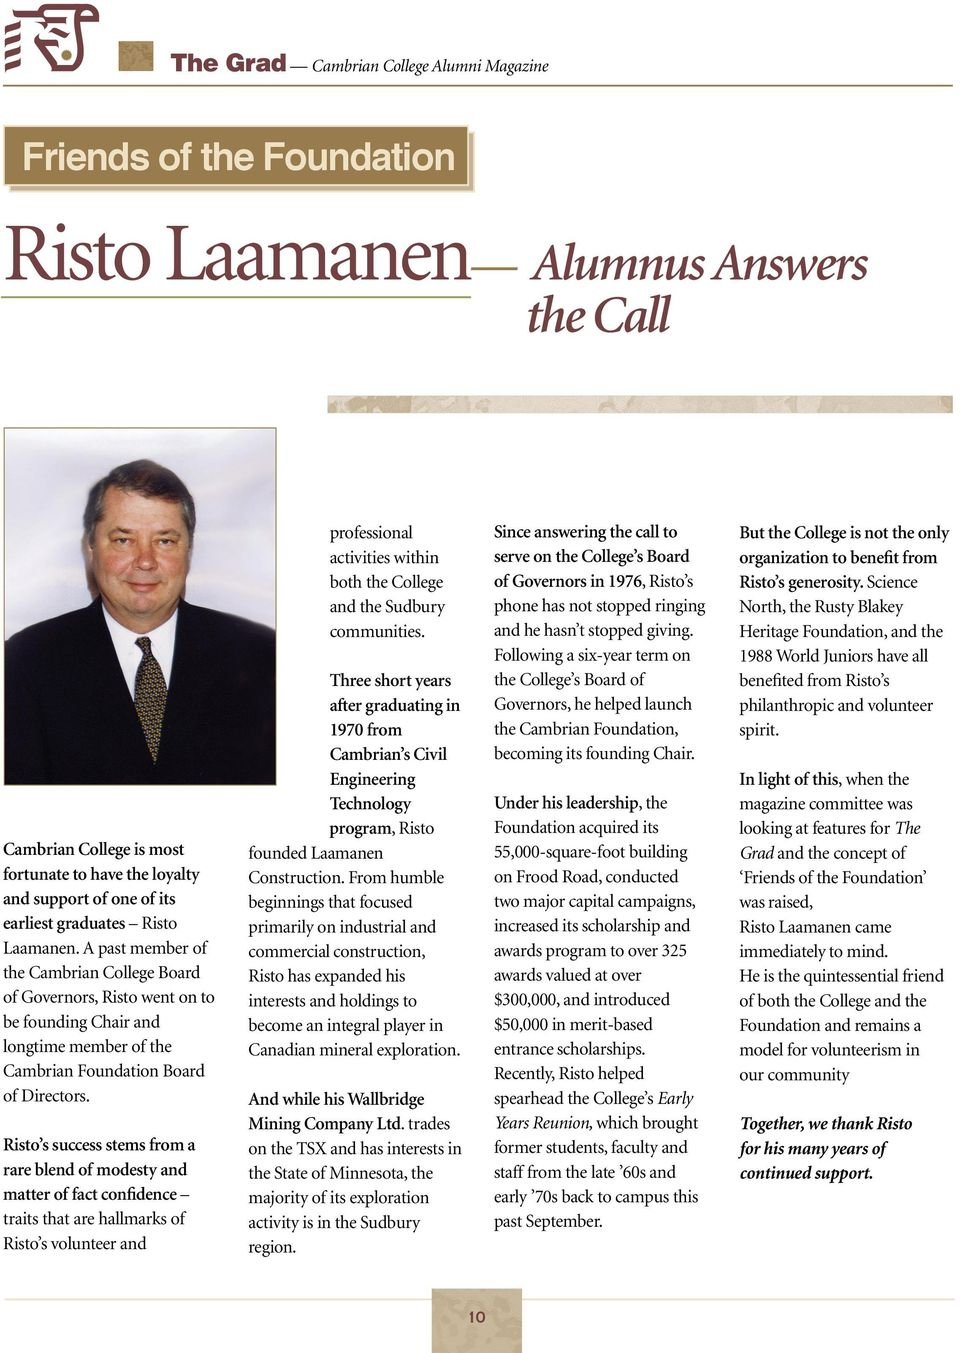 Risto s success stems from a rare blend of modesty and matter of fact confidence traits that are hallmarks of Risto s volunteer and professional activities within both the College and the Sudbury